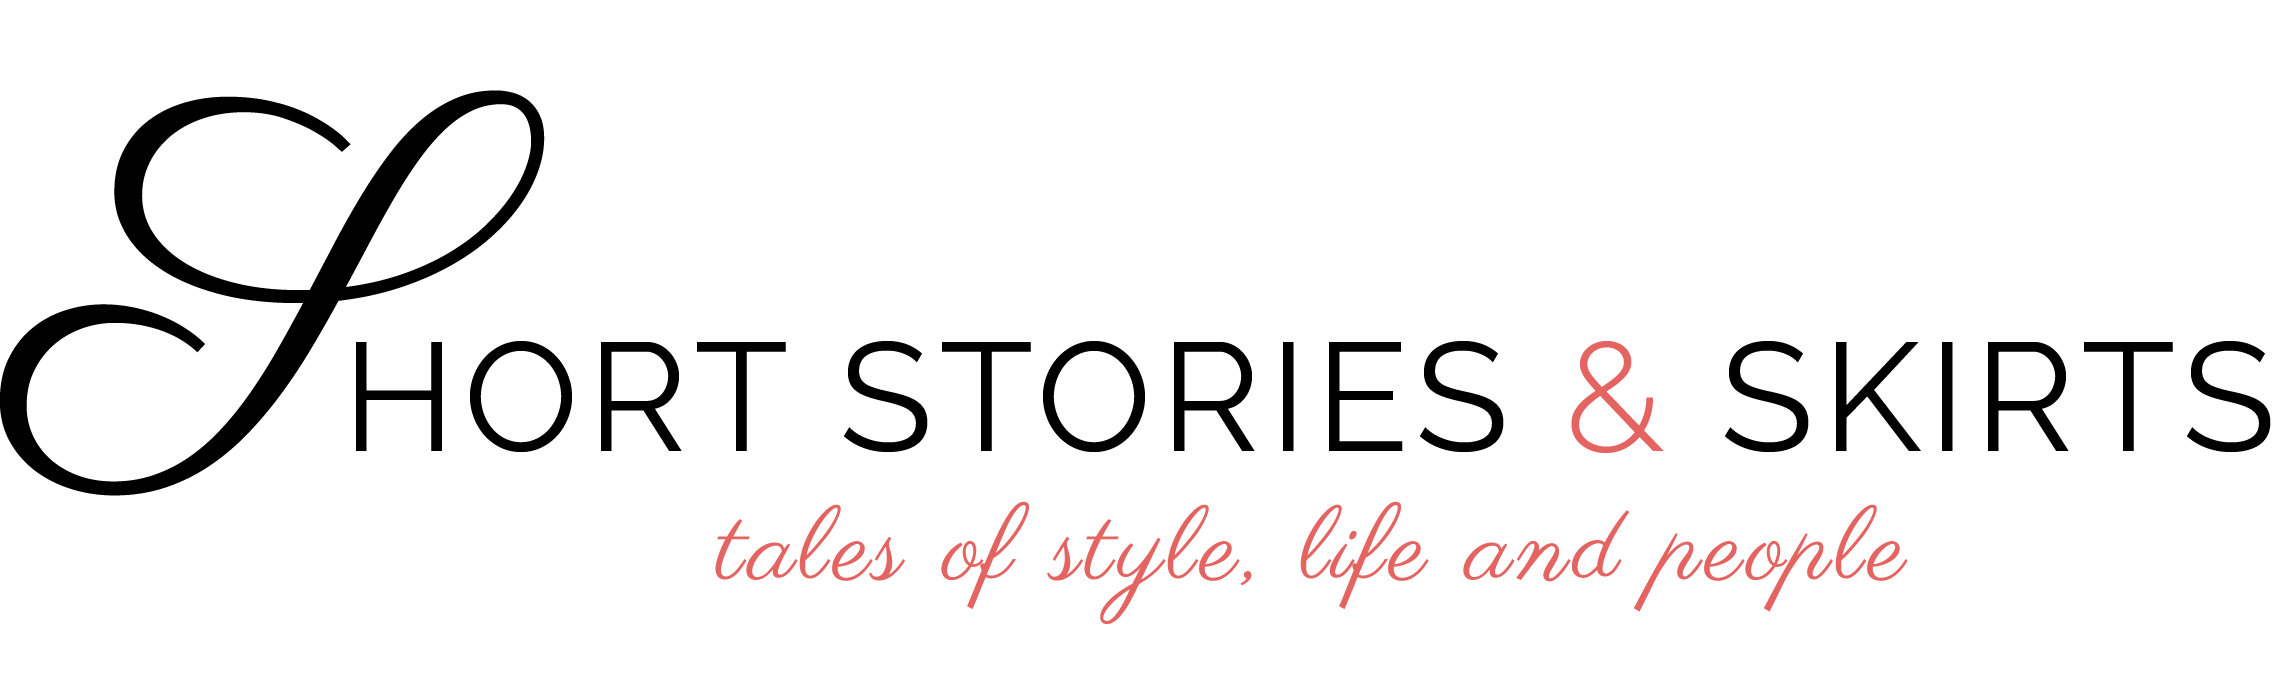 Short Stories & Skirts - tales of style, life and people with that little something